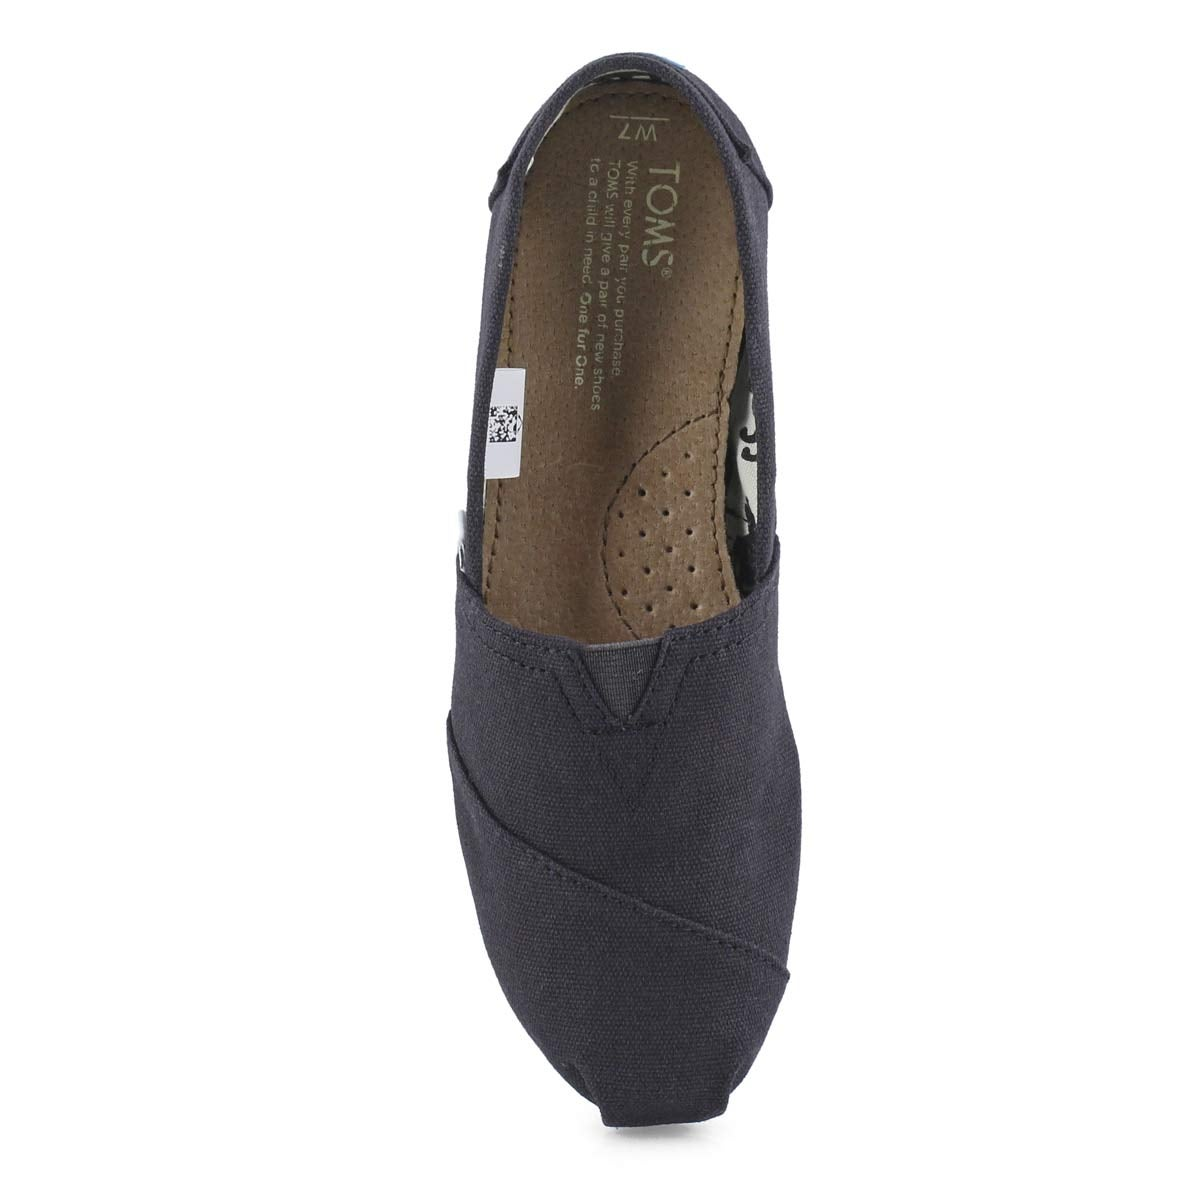 Lds Classic black canvas loafer